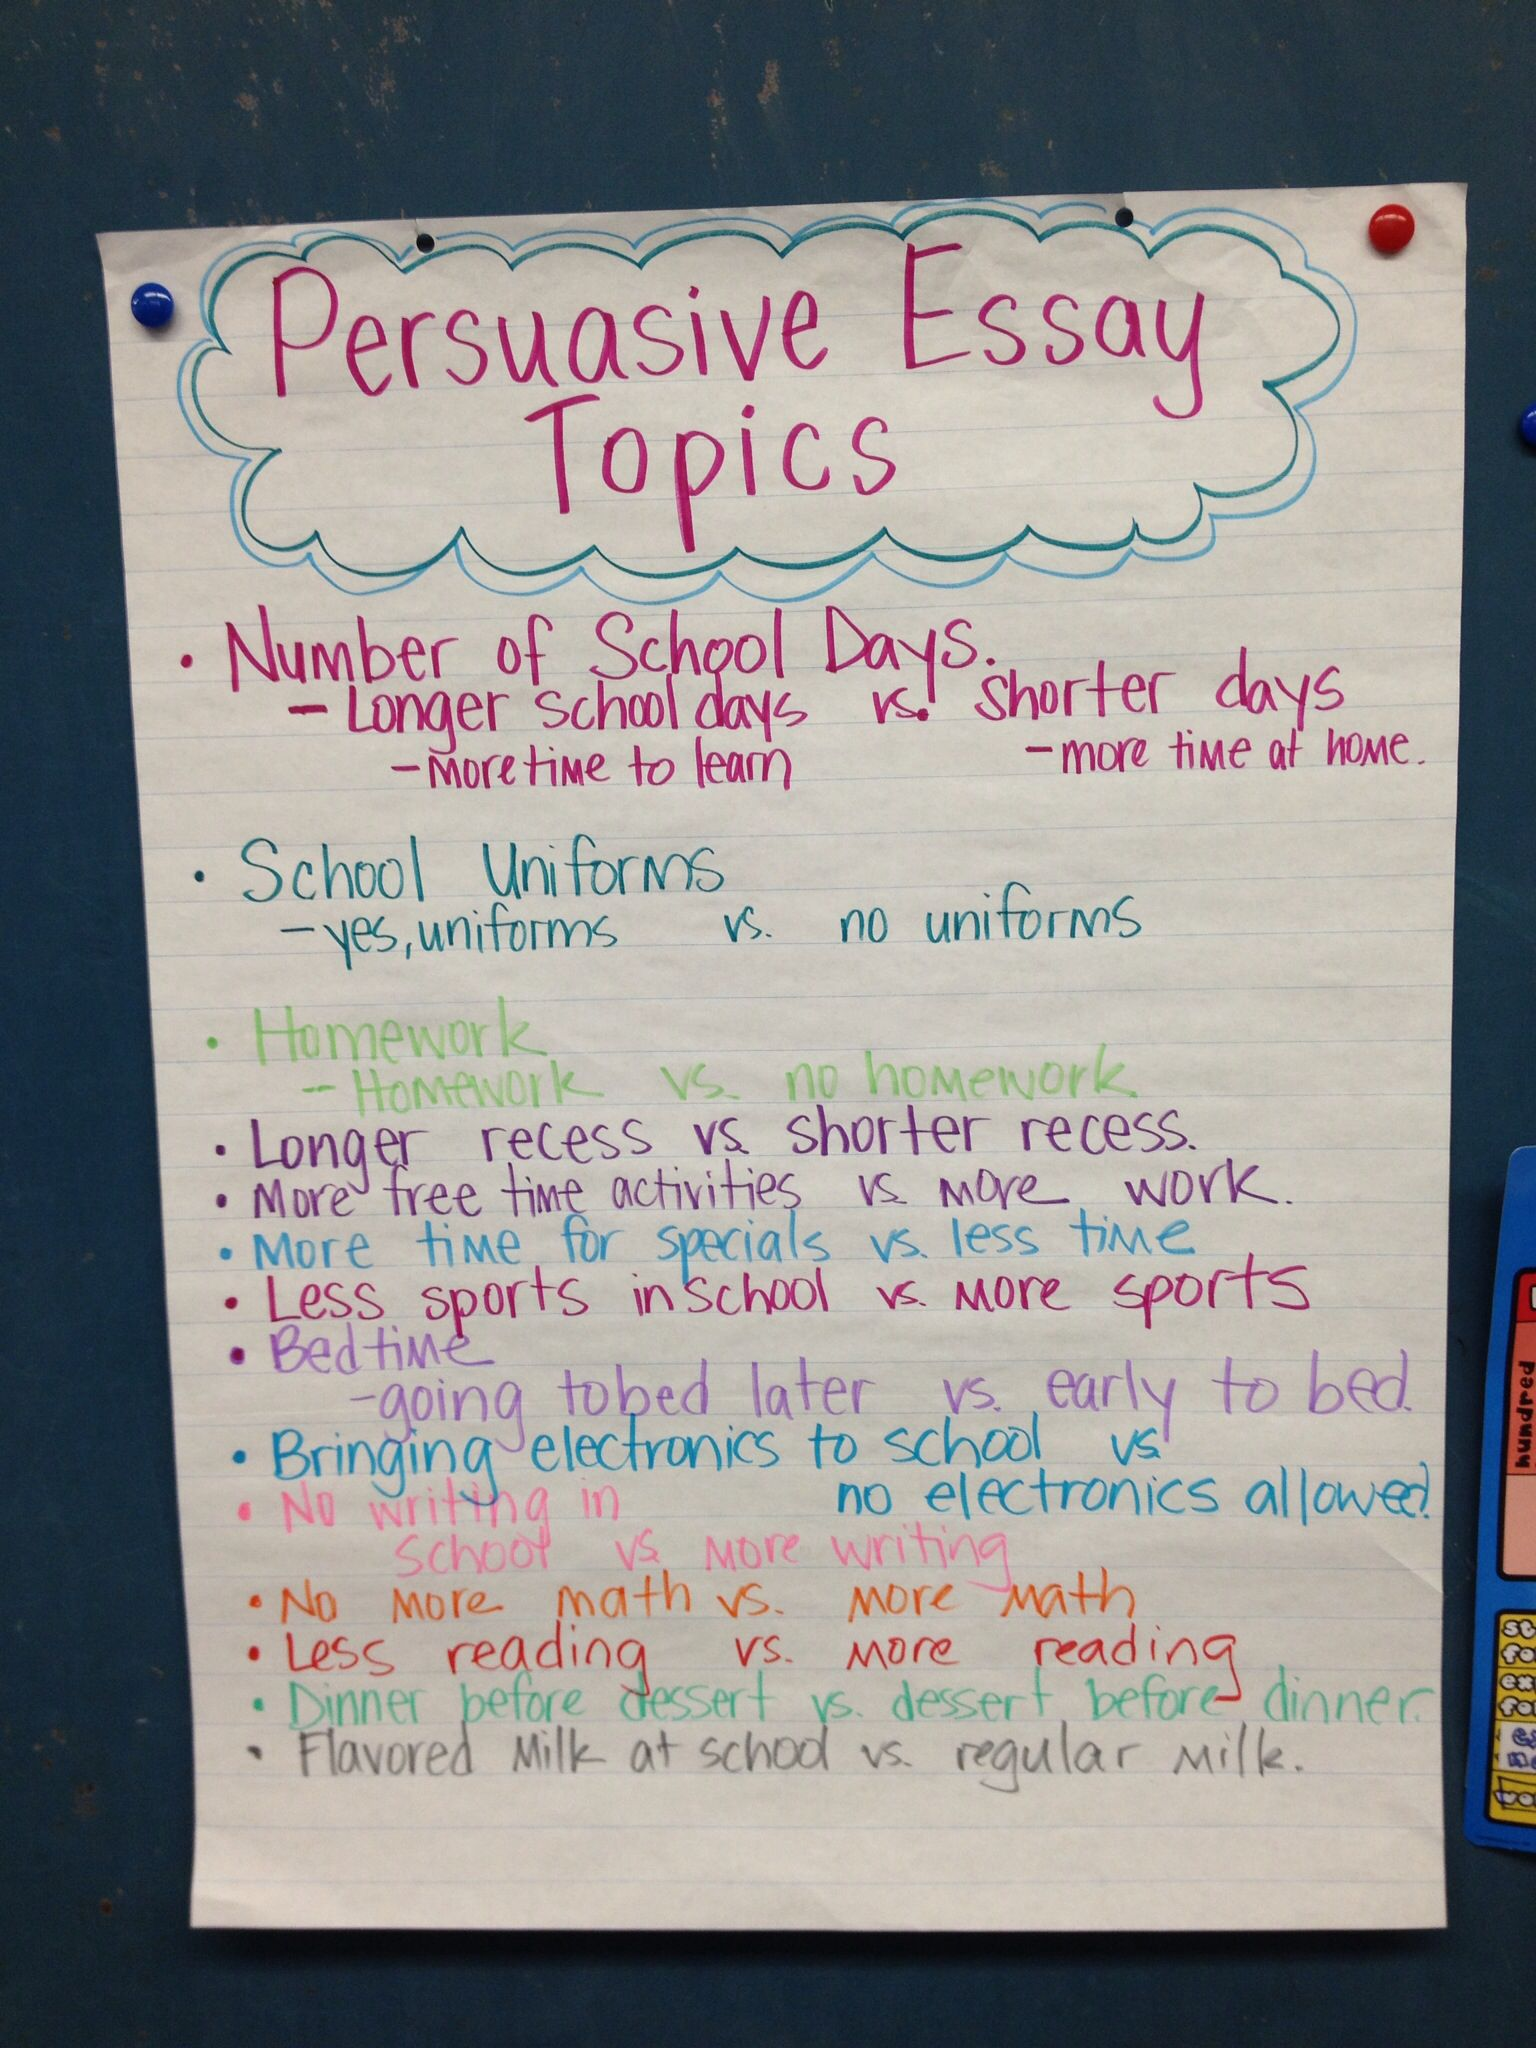 Pin By Sara Walsh On School Daze Persuasive Essays Essay Topics Persuasive Essay Topics